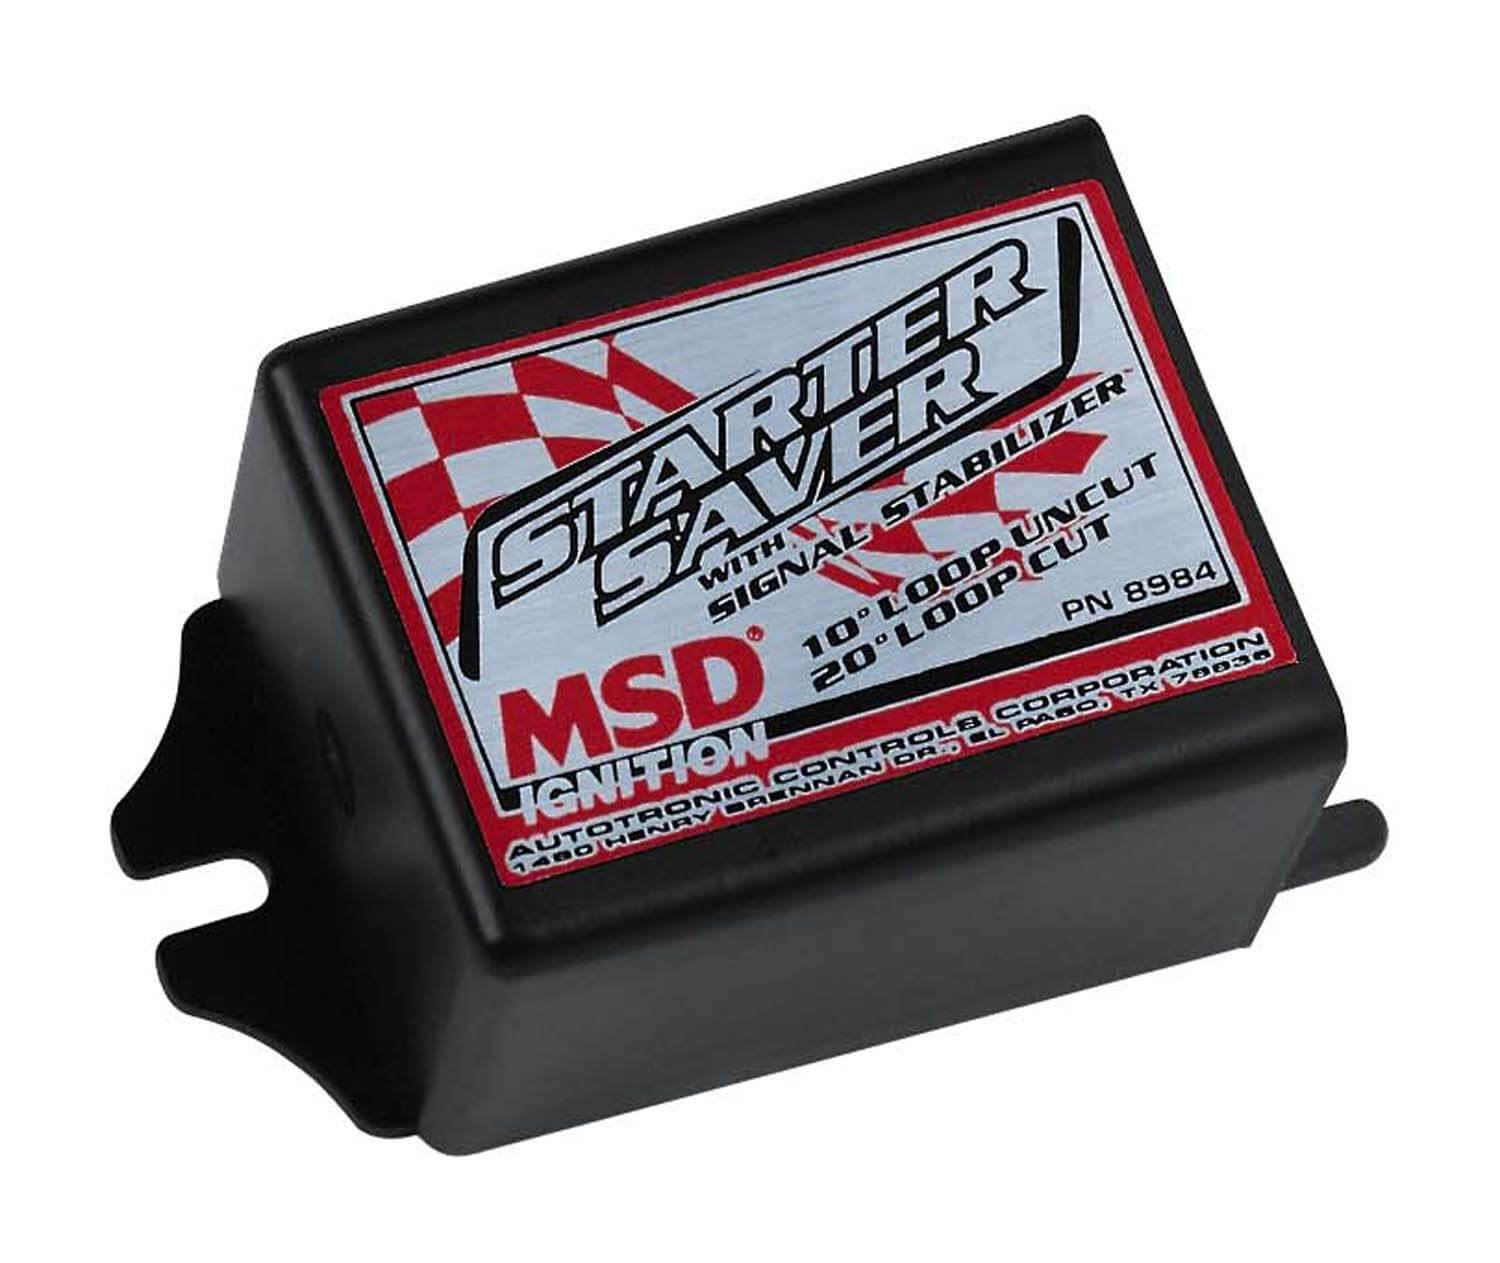 Msd Starter Saver Wiring Diagram Digital 6al Box Combination Ignition 8984 W Signal Stabilizer Performance Products Chevy